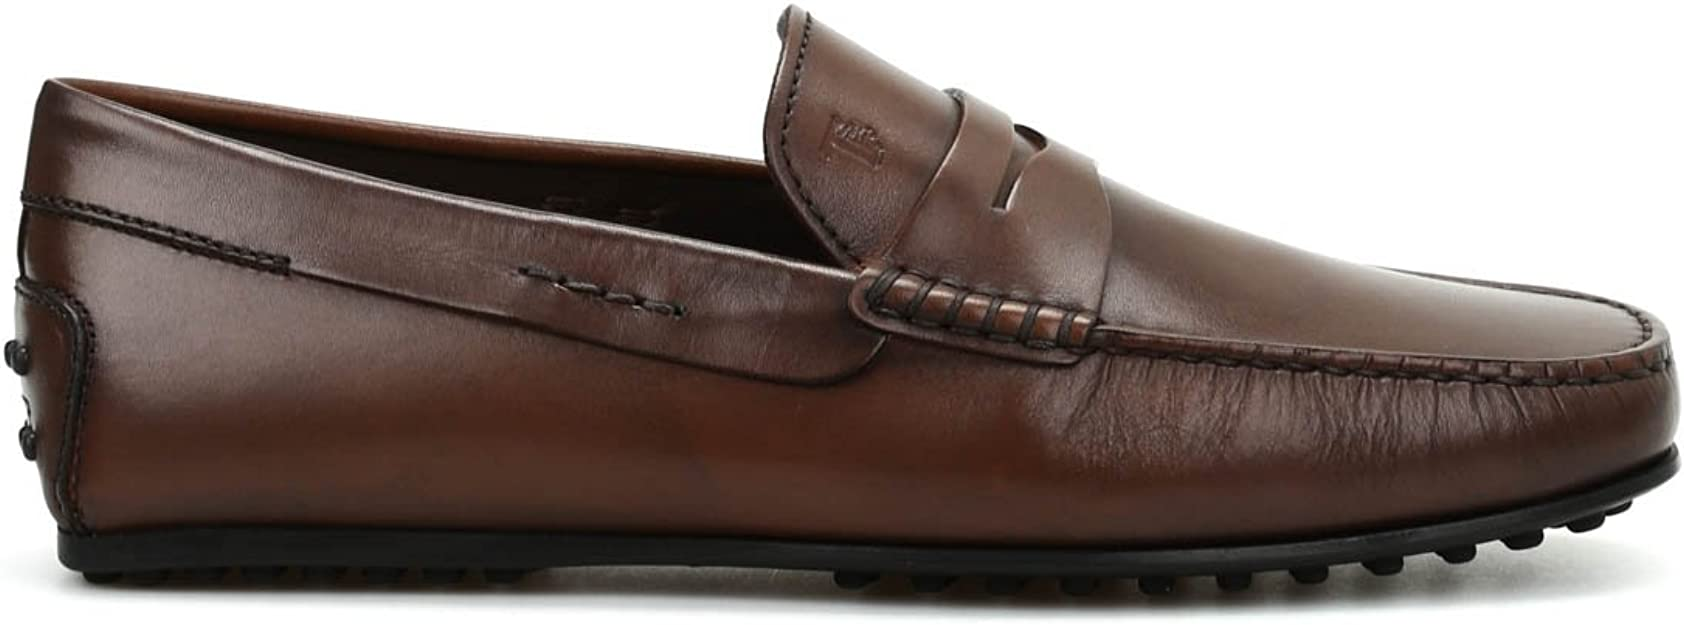 Details about  /Tod/'s Men/'s MOCASSINO Gommino Leather Moccasins Loafers Shoes BROWN